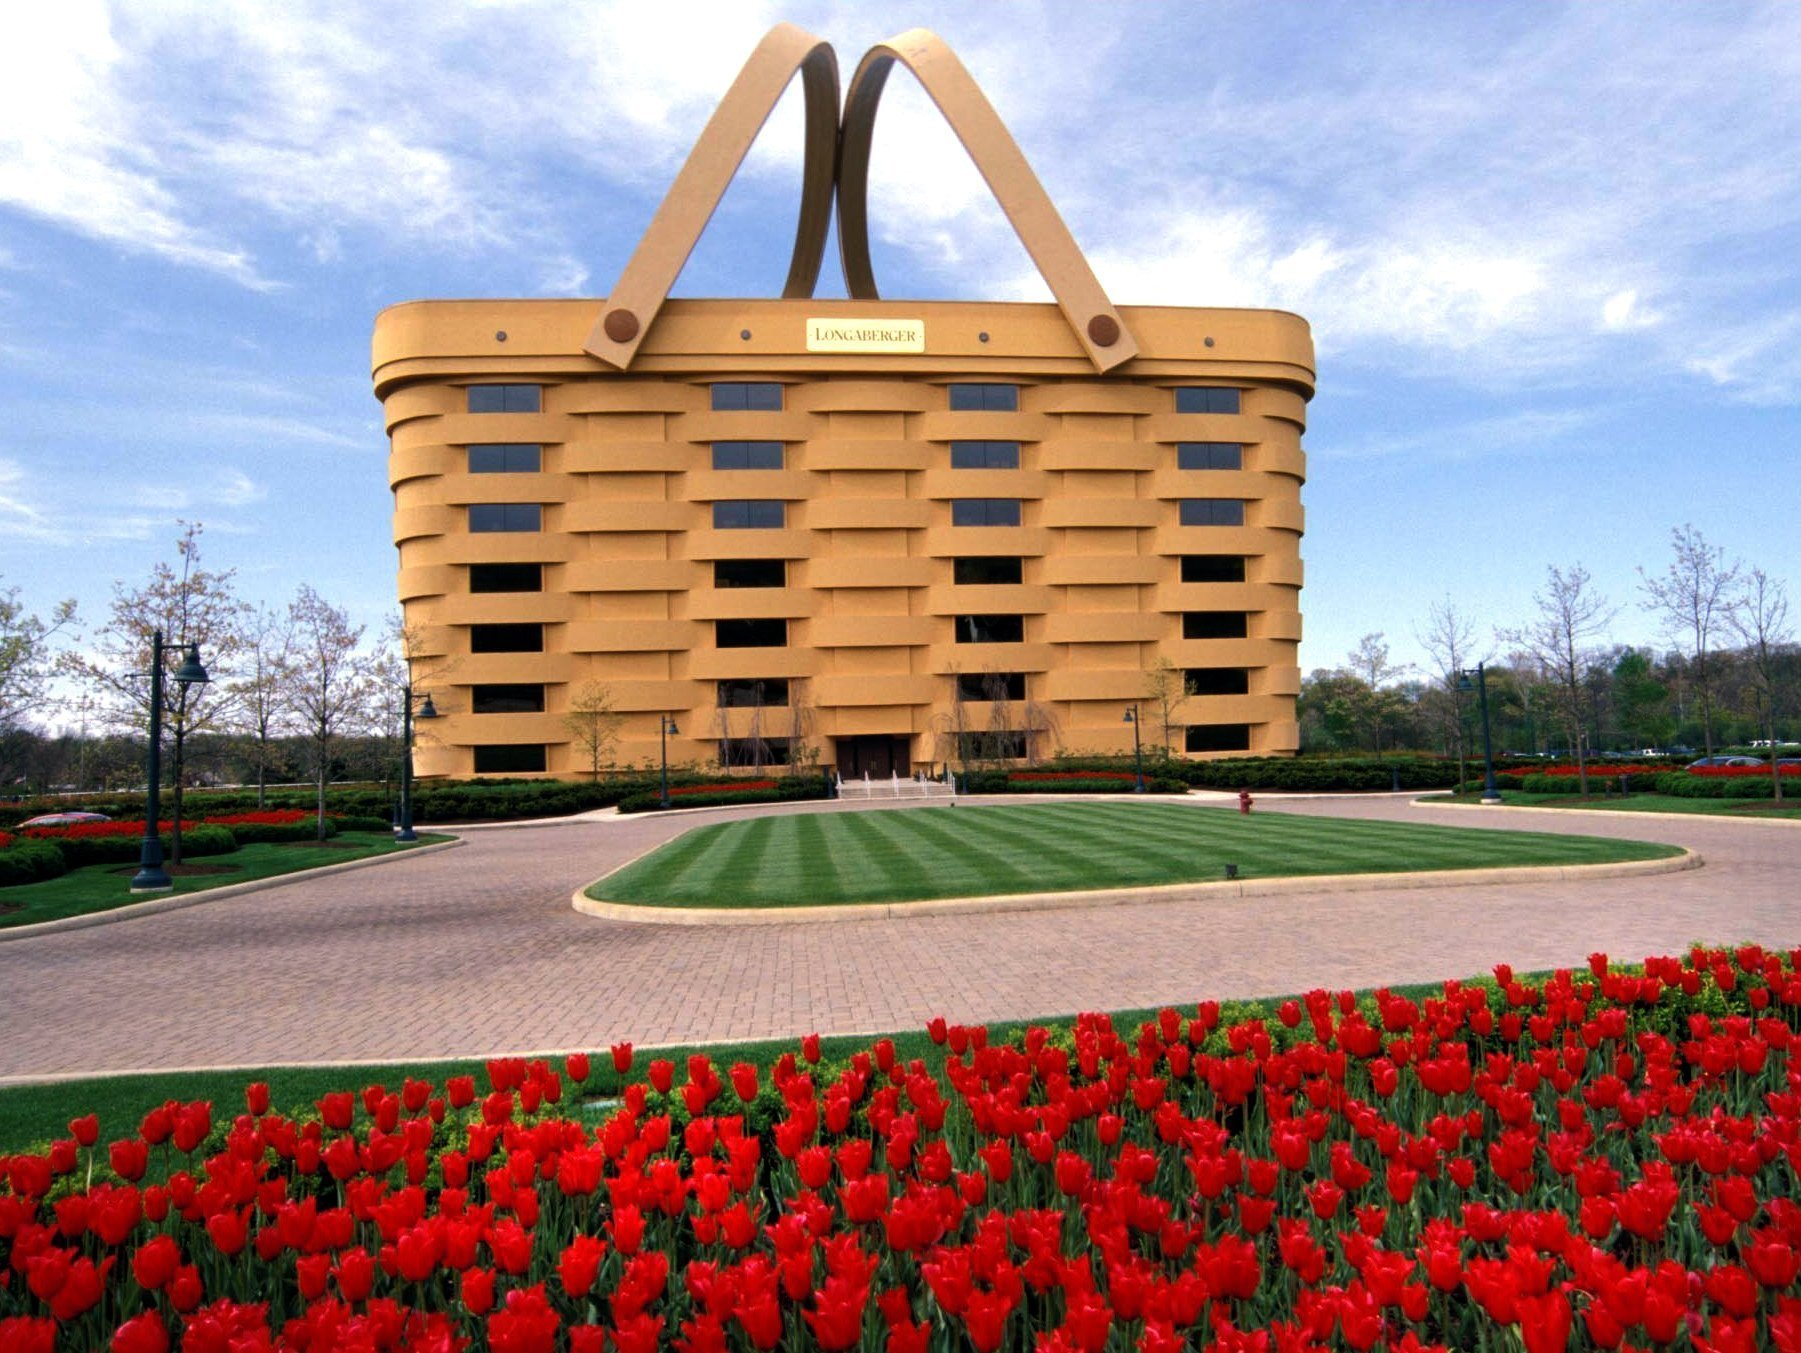 Etonnant The Weirdest Building In America, A Huge Picnic Basket, Becomes Basket Case